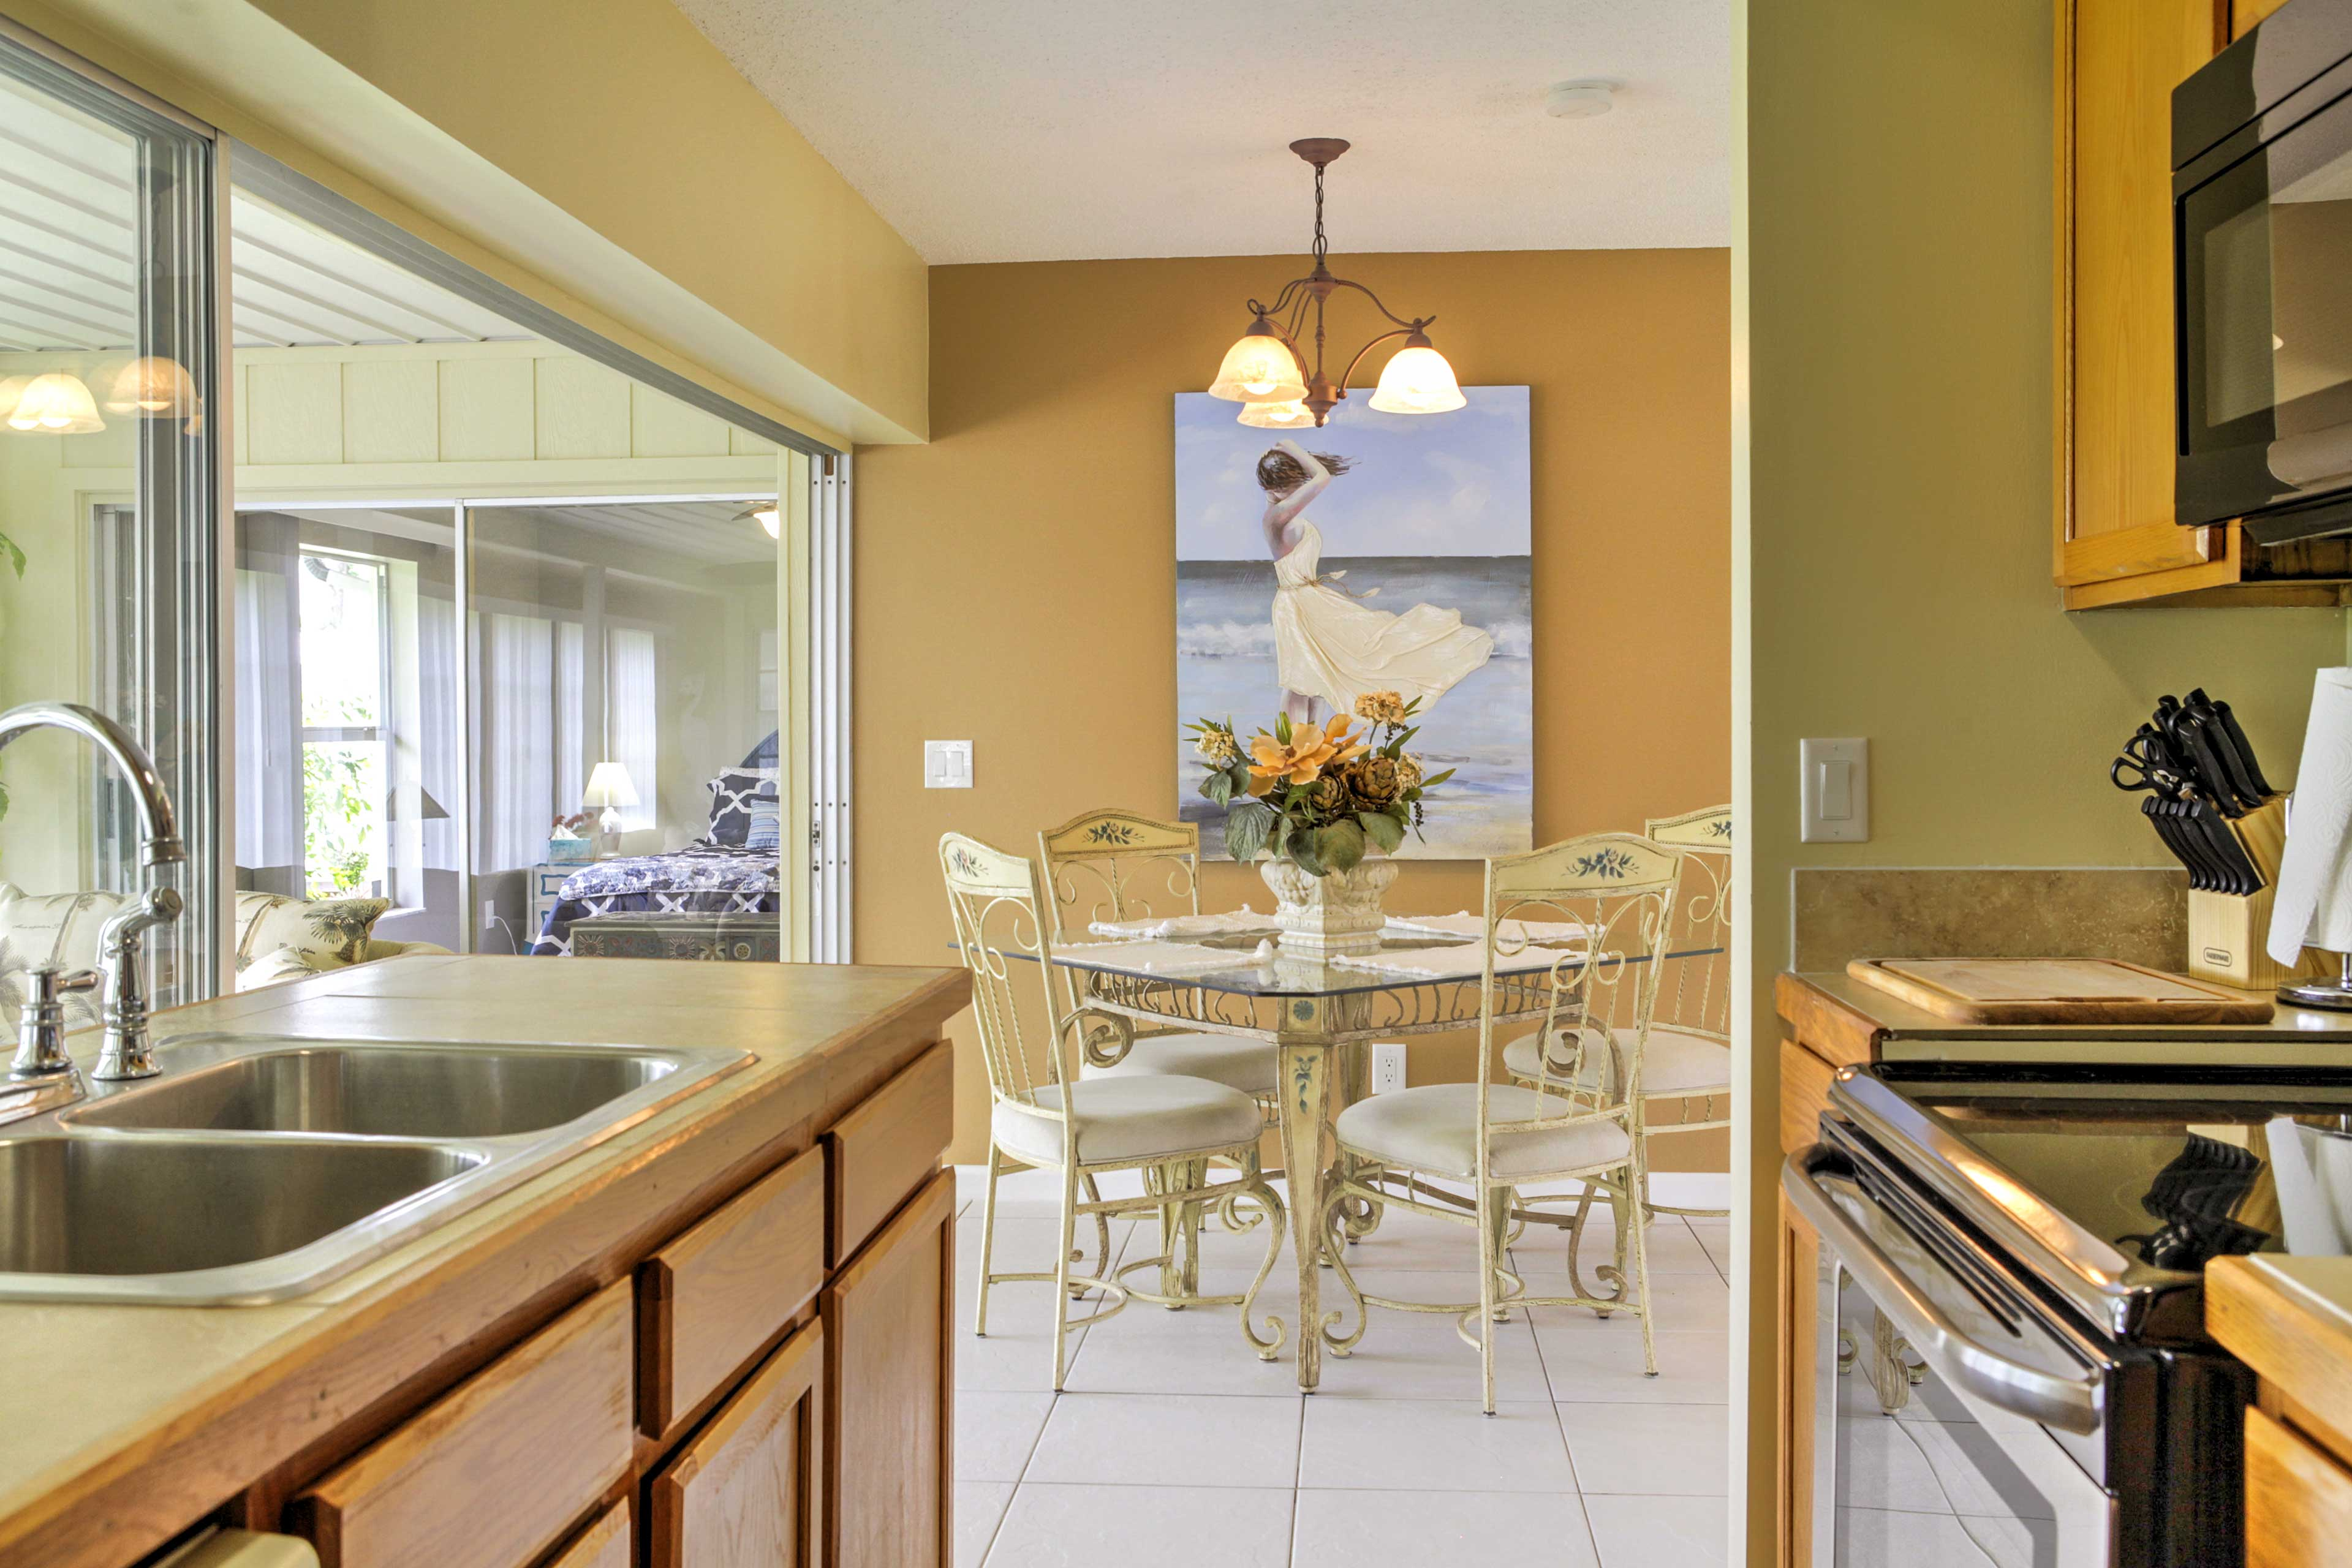 The dining area opens up into the kitchen.